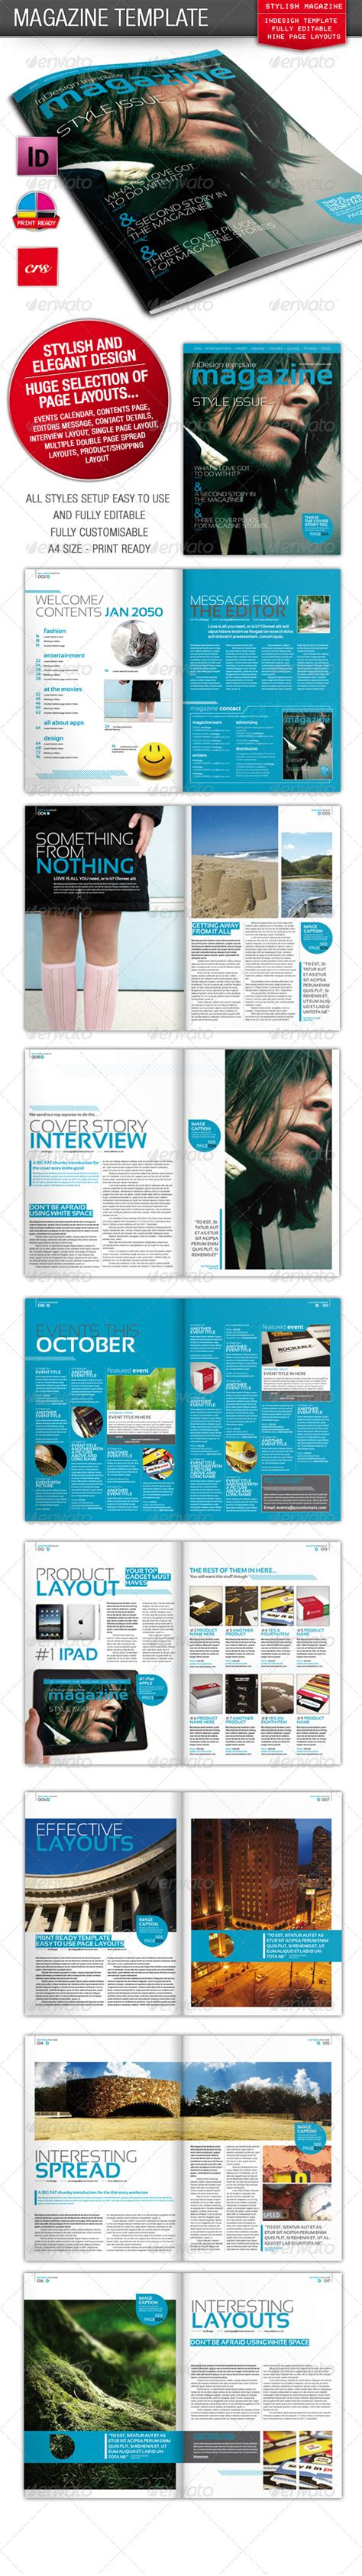 indesign magazine templates 10 magazine layout templates for indesign and